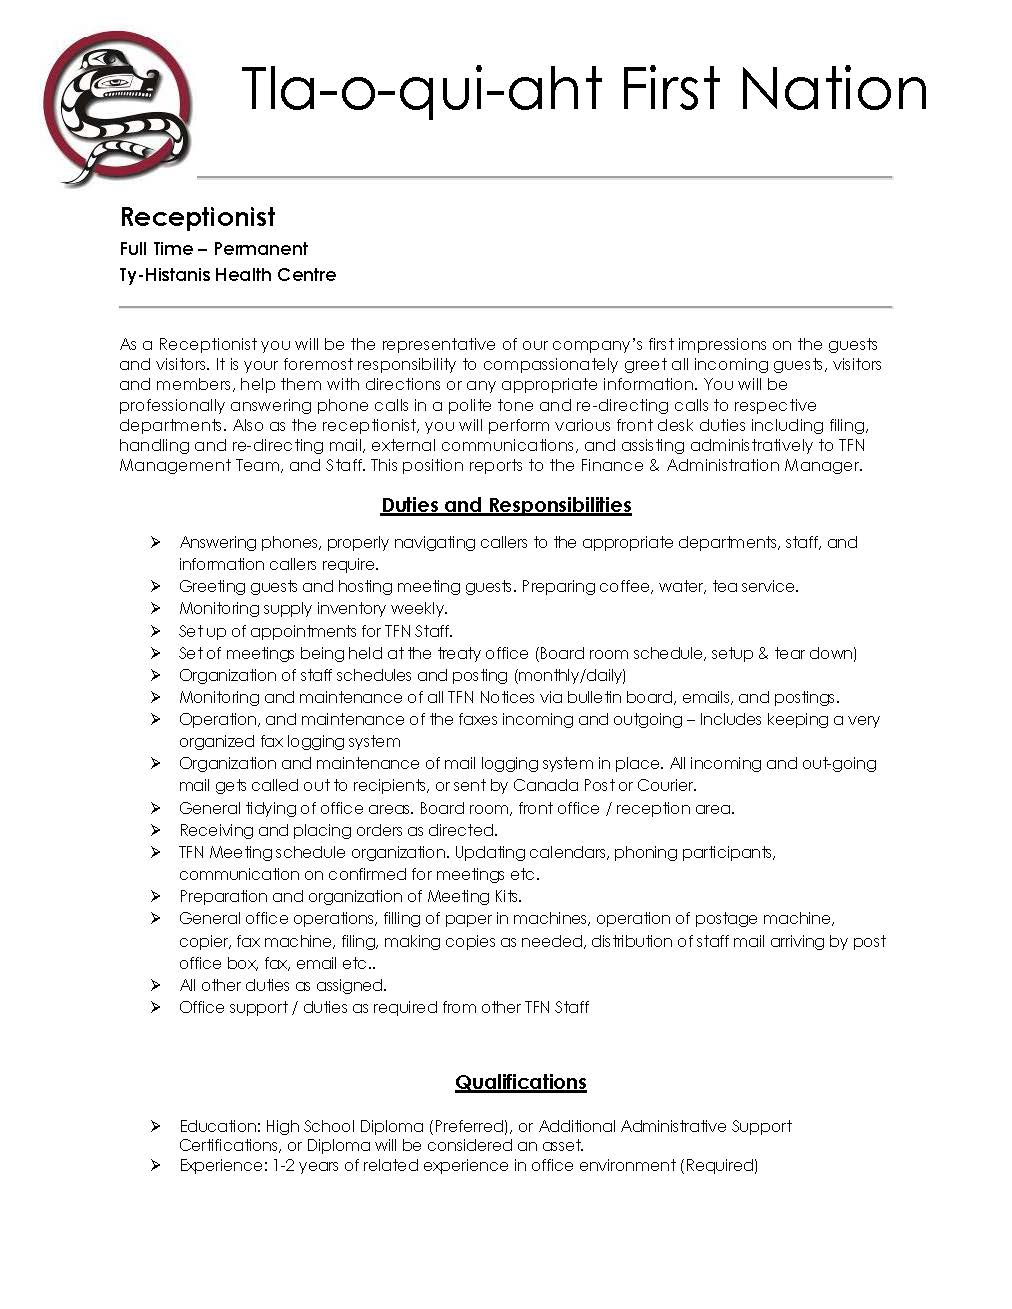 TFN Receptionist - Job Posting February 2017_Page_1.jpg